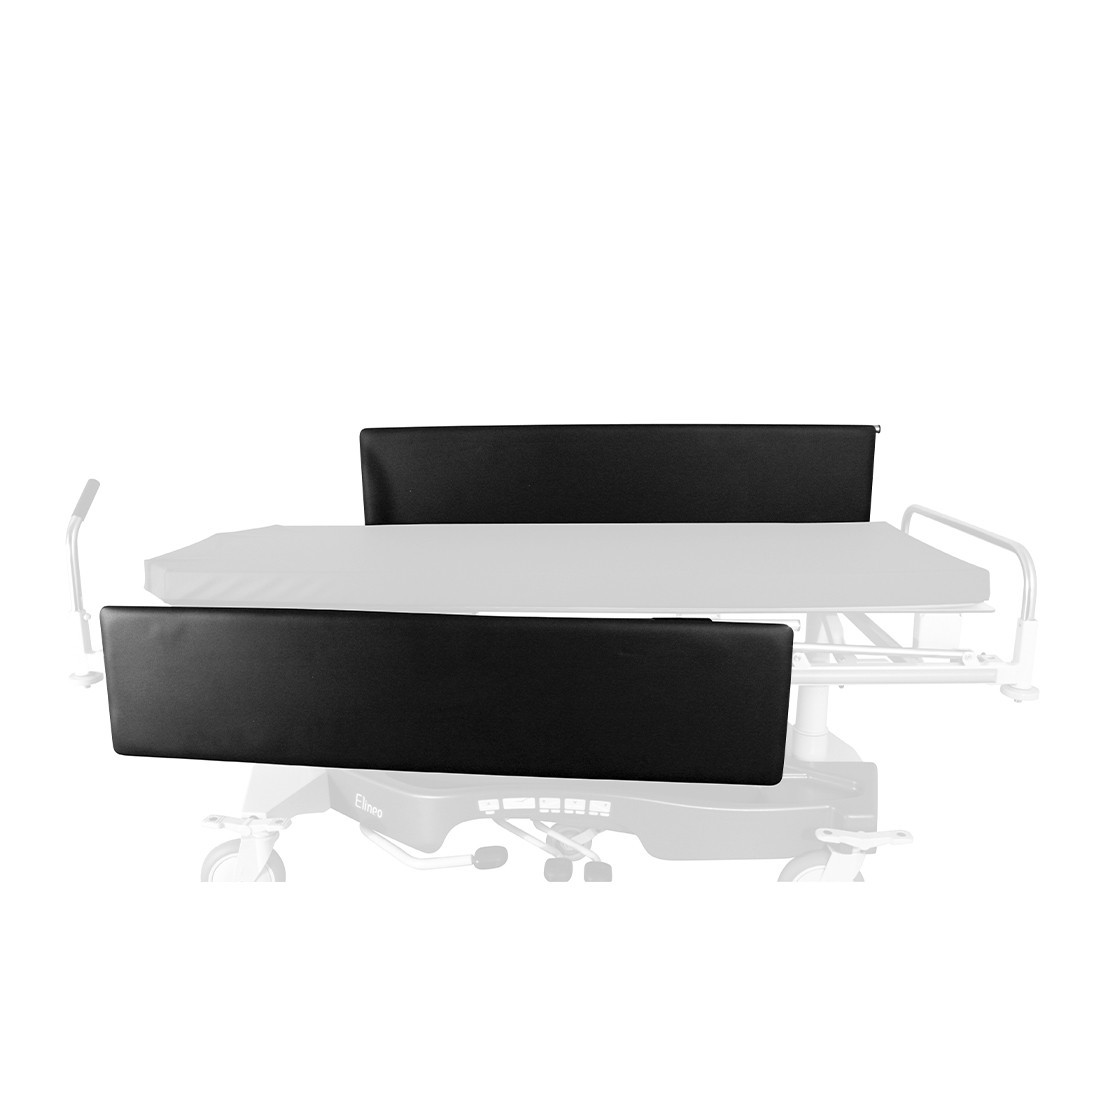 456Pair of padded cotside bumpers